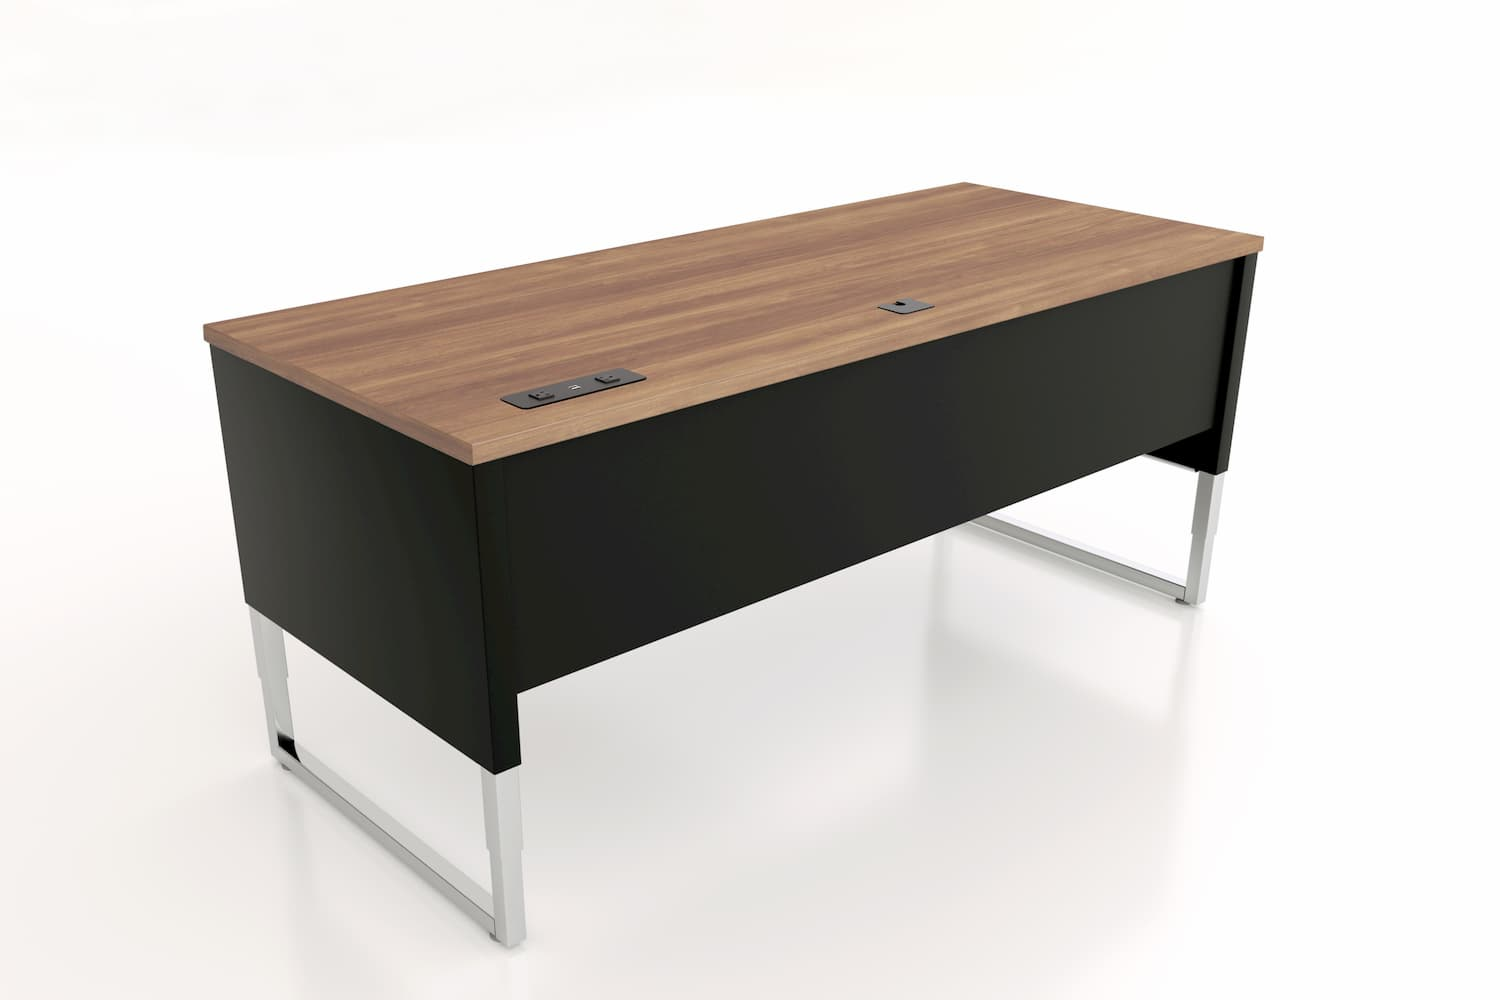 Advent-Desk-ADV-7230-BK-Custom-Top-2-Back